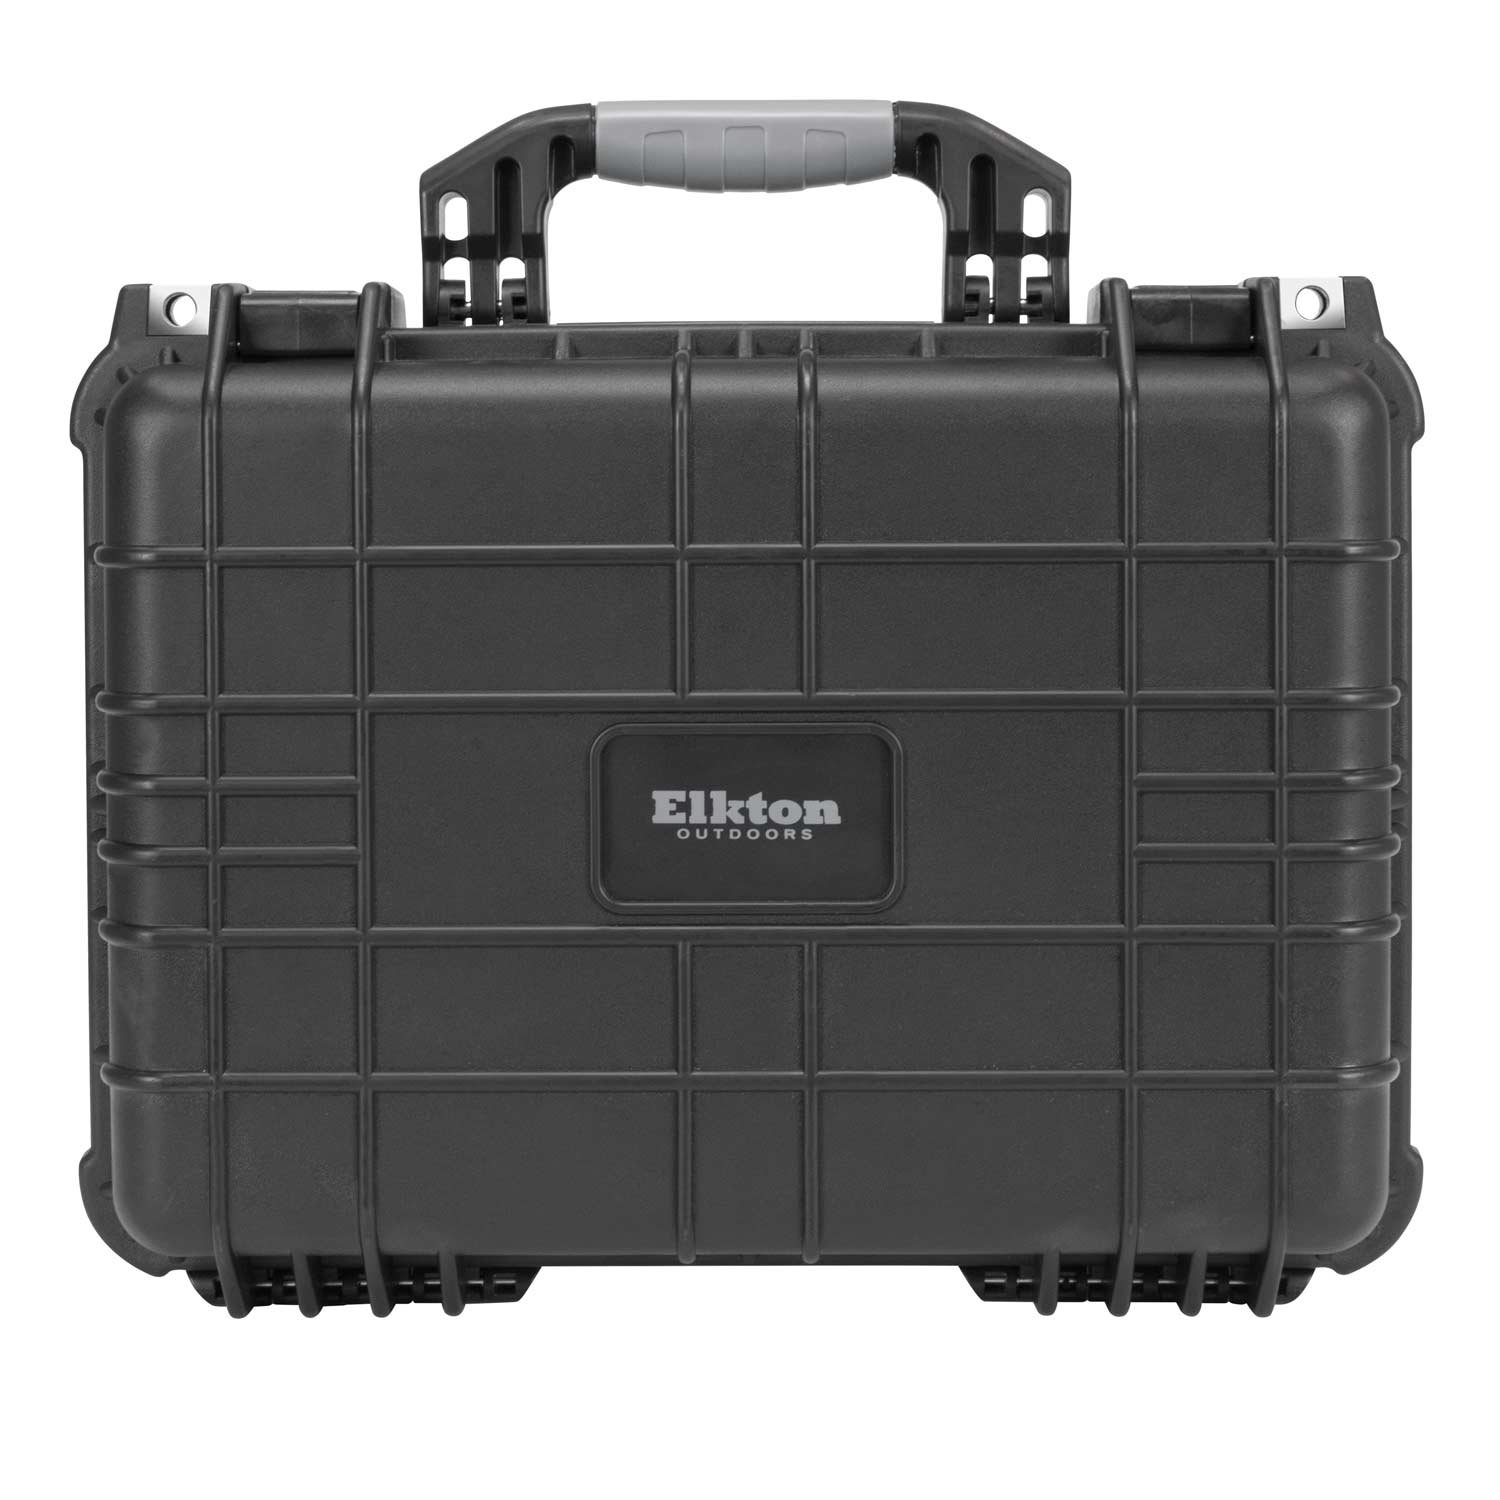 Elkton Outdoors Hard Gun Case: Fully Customizable Pistol Case: Holds 4 Handguns and 8 Magazines: Crush Resistant & Waterproof! by Elkton Outdoors (Image #5)